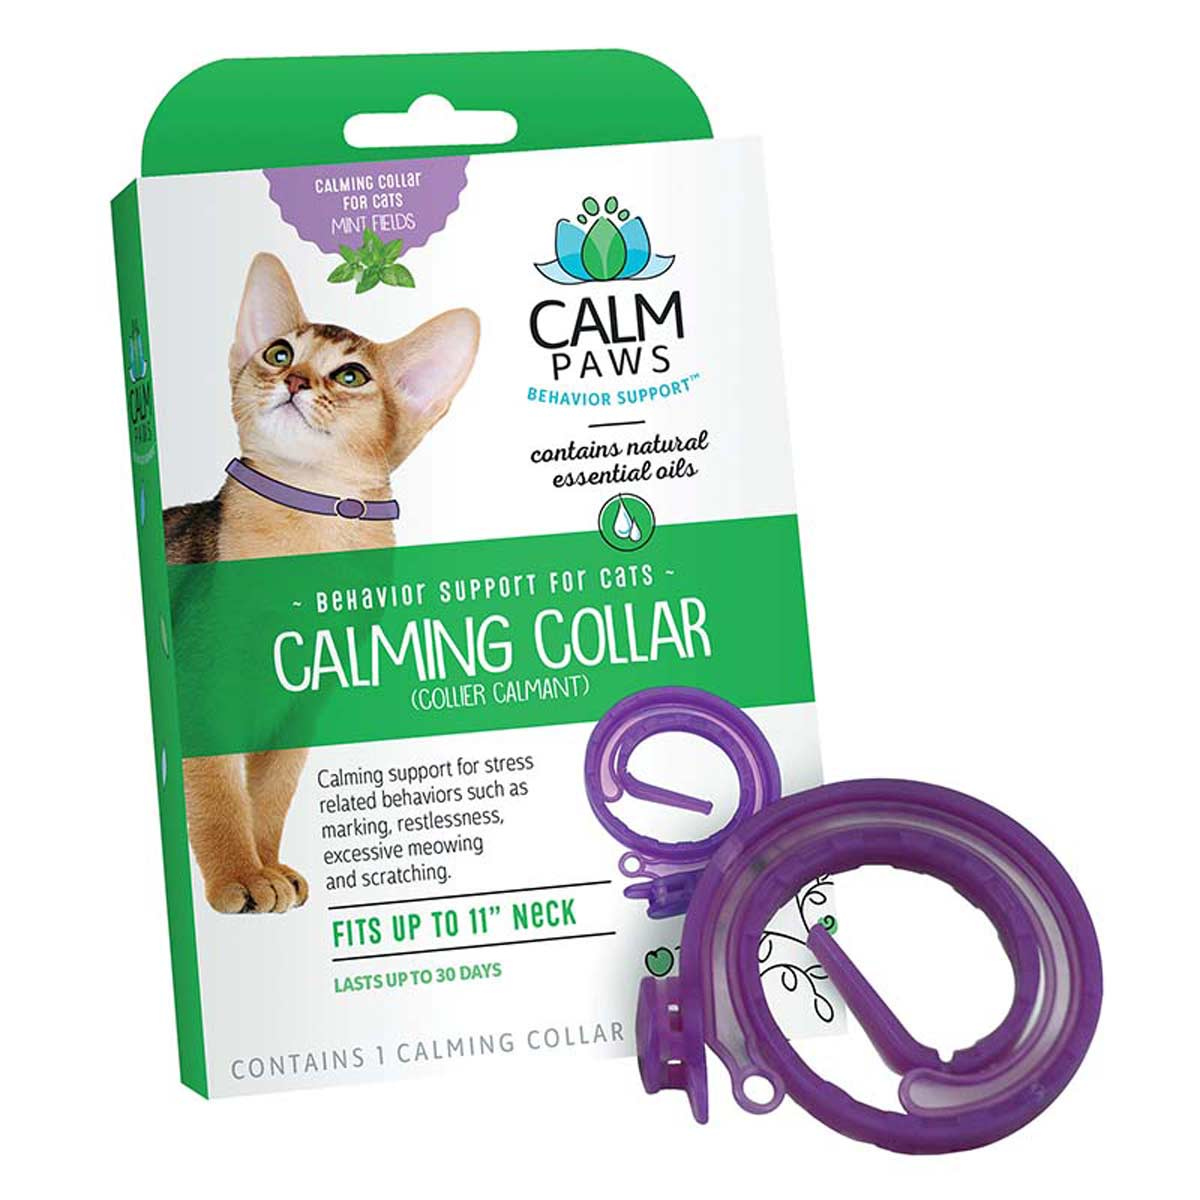 Calm Paws Calming Collar for Cats in Box